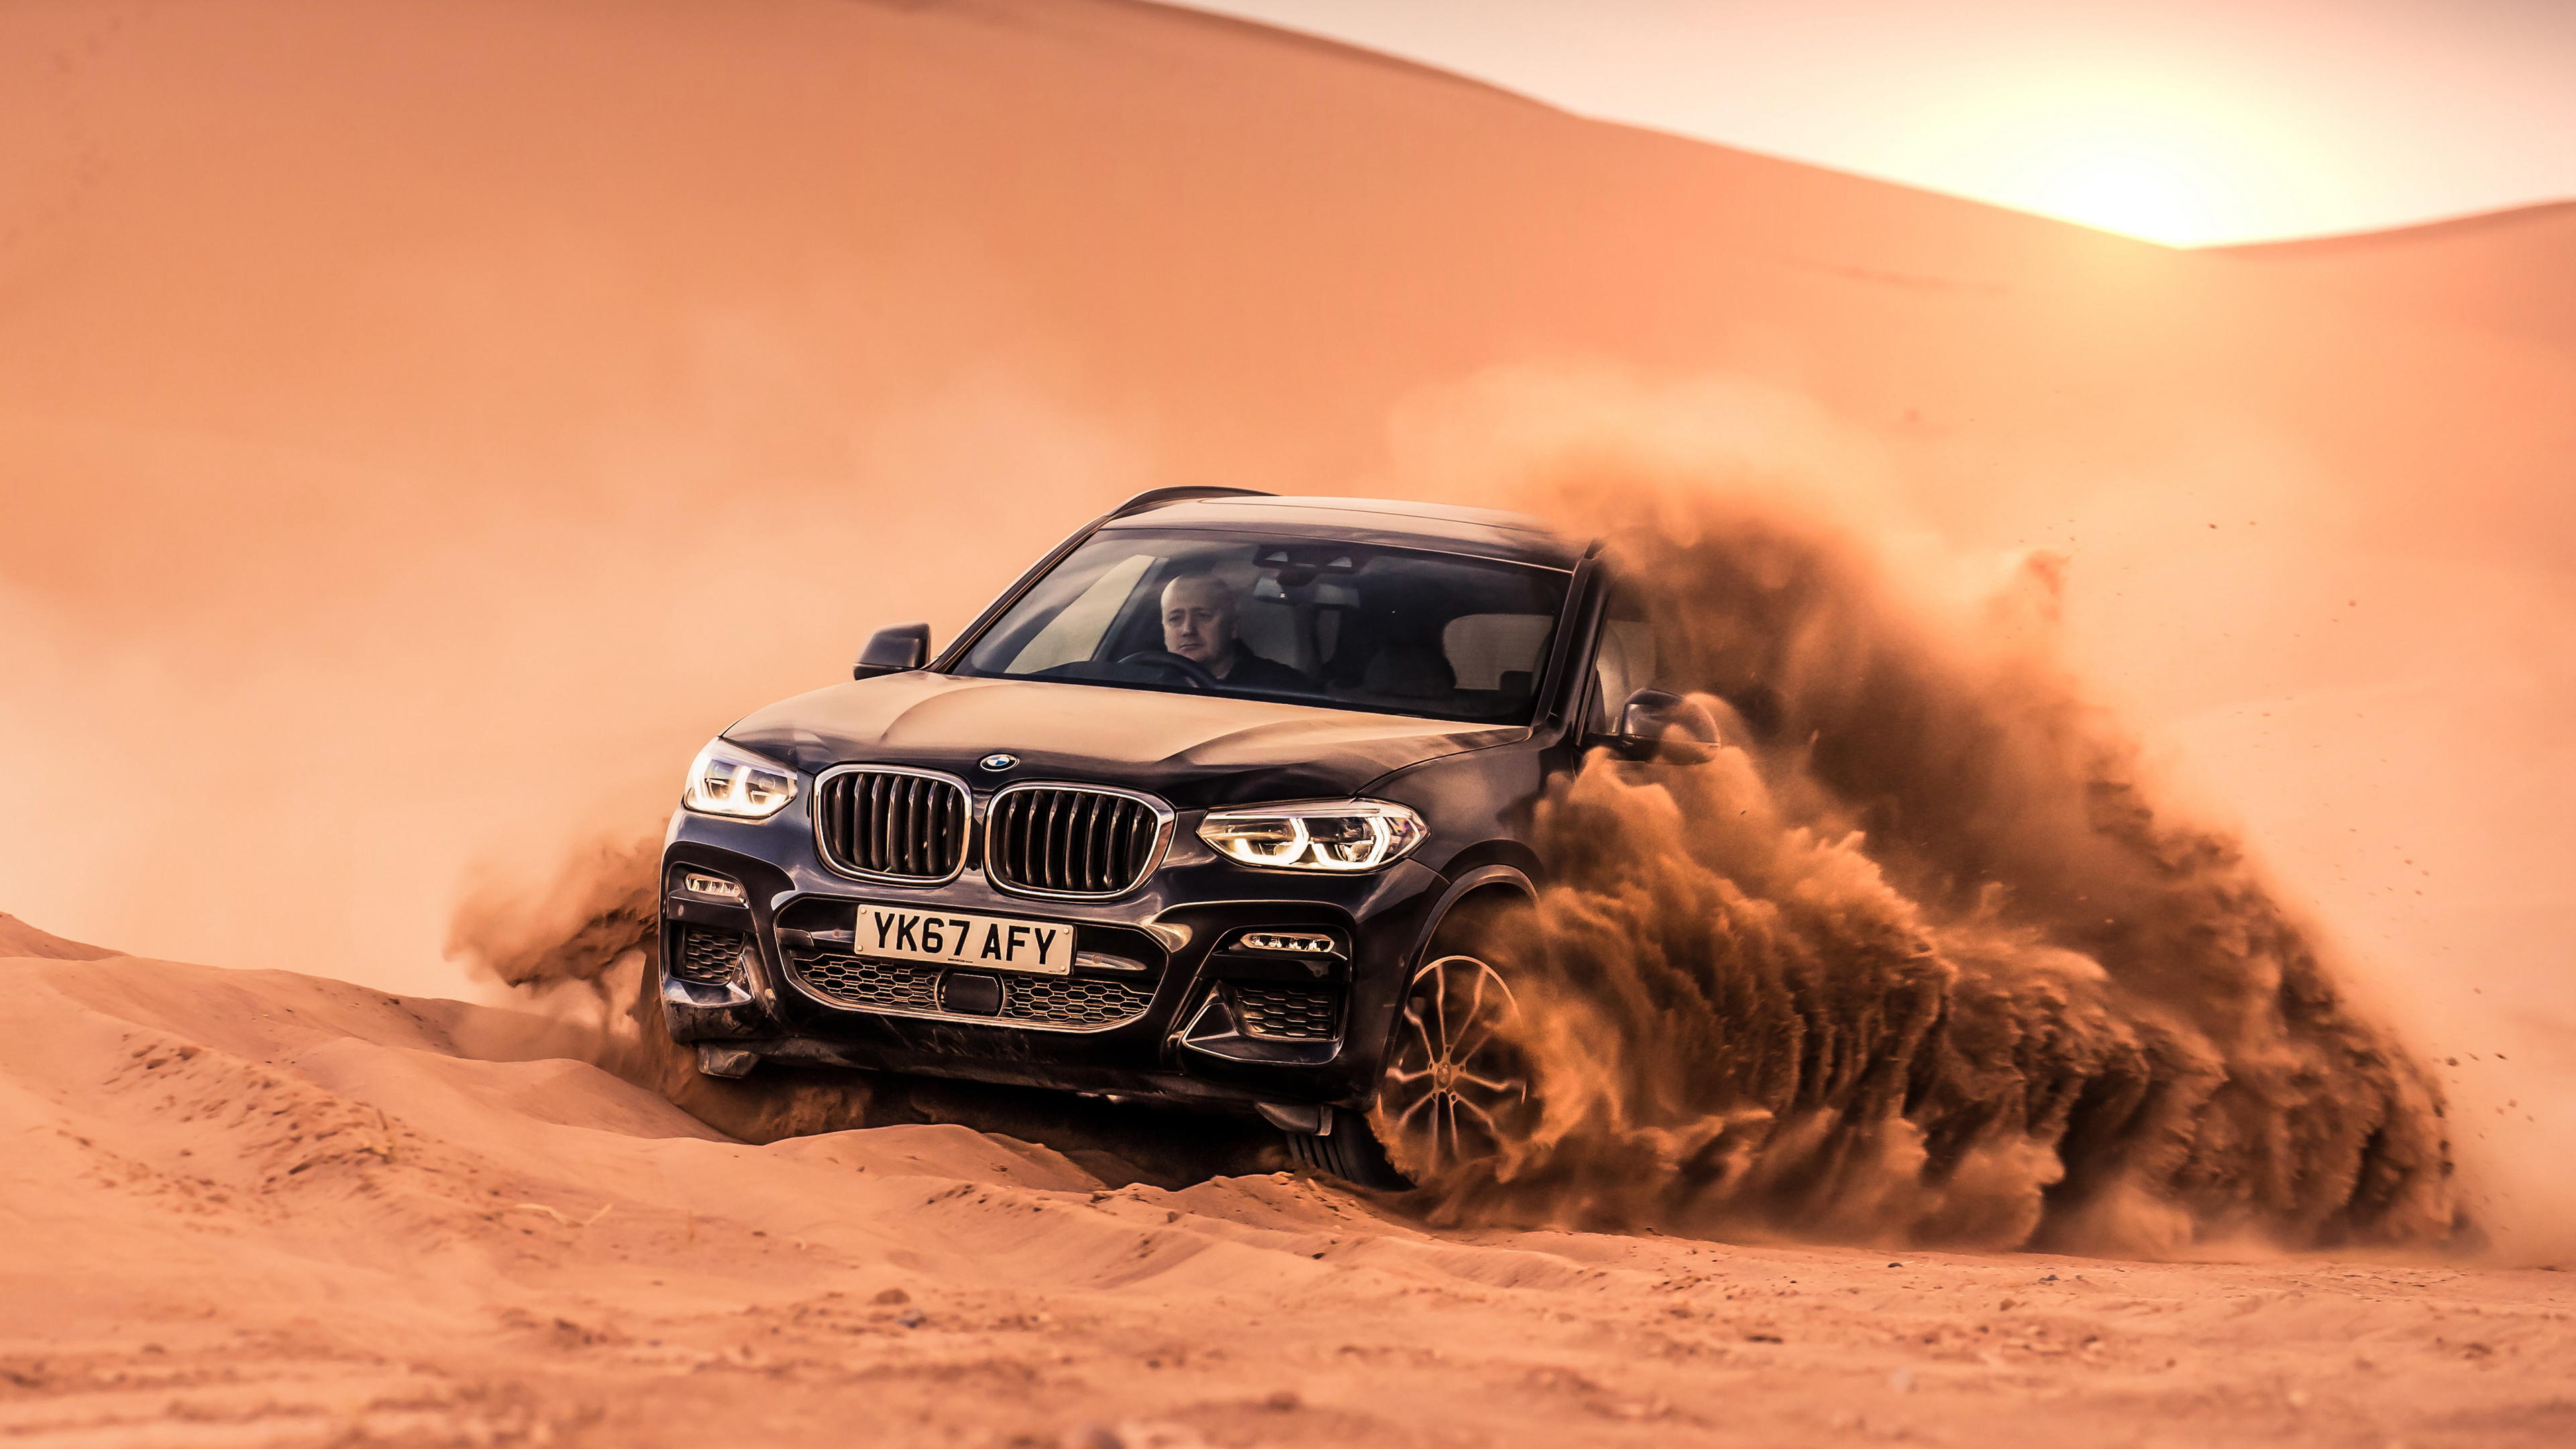 bmw x3 xdrive30d m sport 2017 offroading 1539107968 - BMW X3 XDrive30d M Sport 2017 Offroading - offroading wallpapers, hd-wallpapers, cars wallpapers, bmw x3 wallpapers, bmw wallpapers, 4k-wallpapers, 2017 cars wallpapers